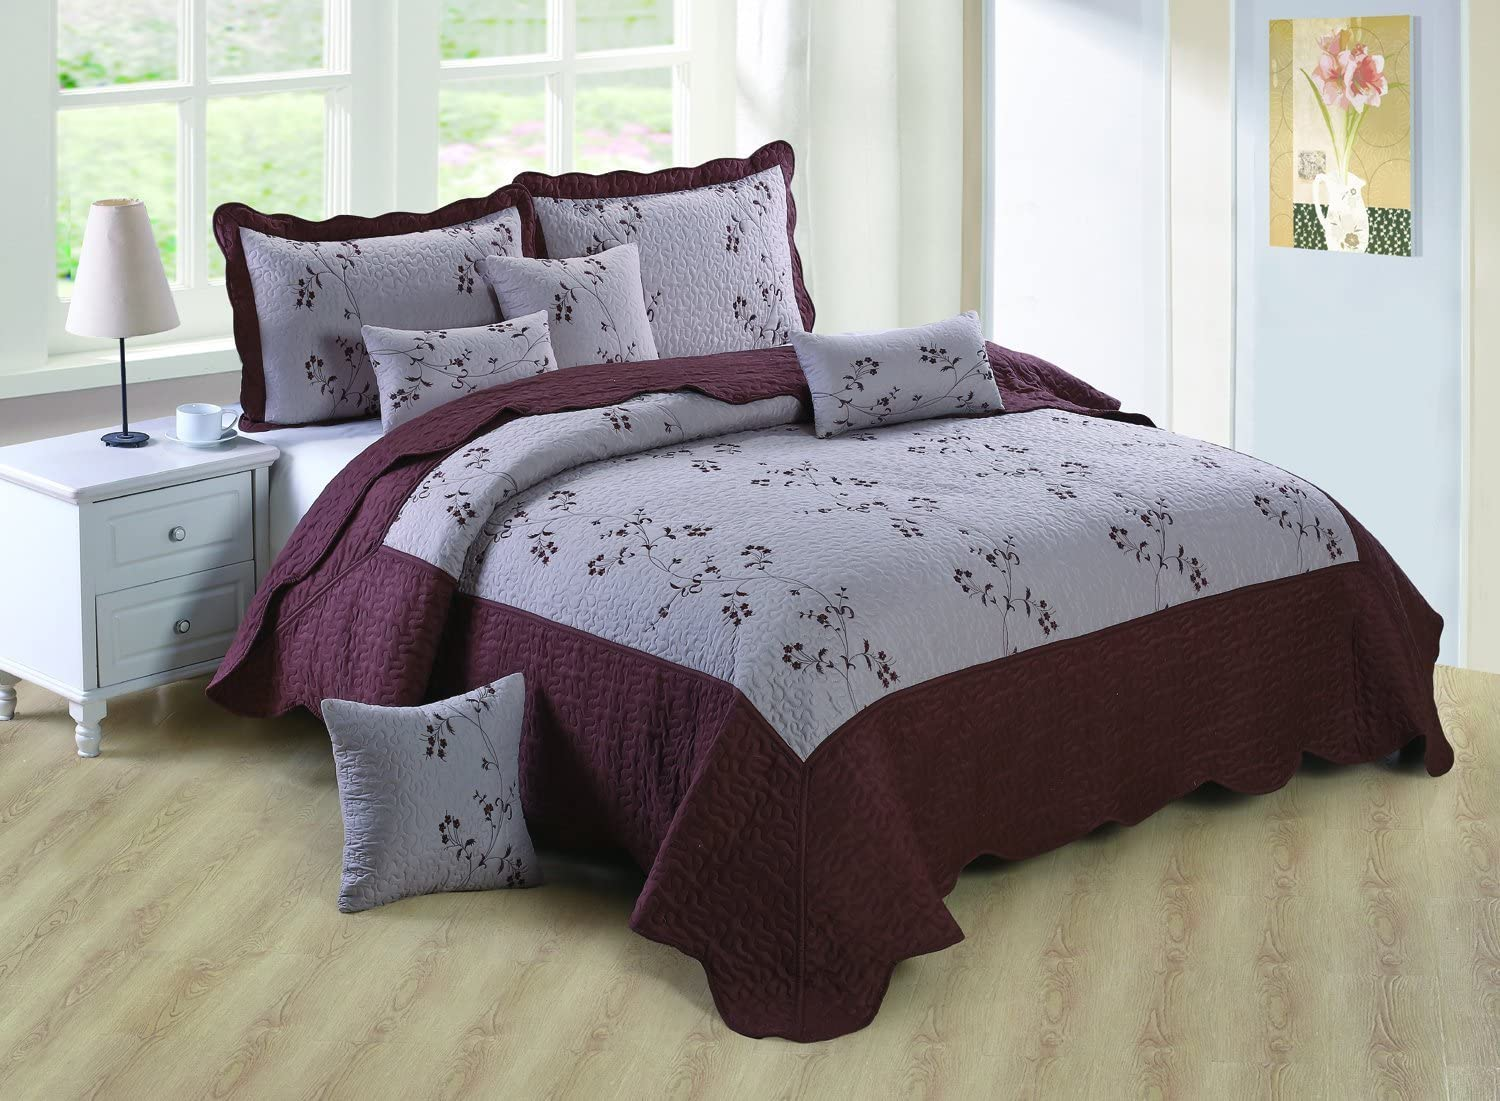 DOLCA CASA Embroidery Bed Spread With 2 Free Pillow Cases,Bed Throw 100/% Cotton Feel Double, Silver